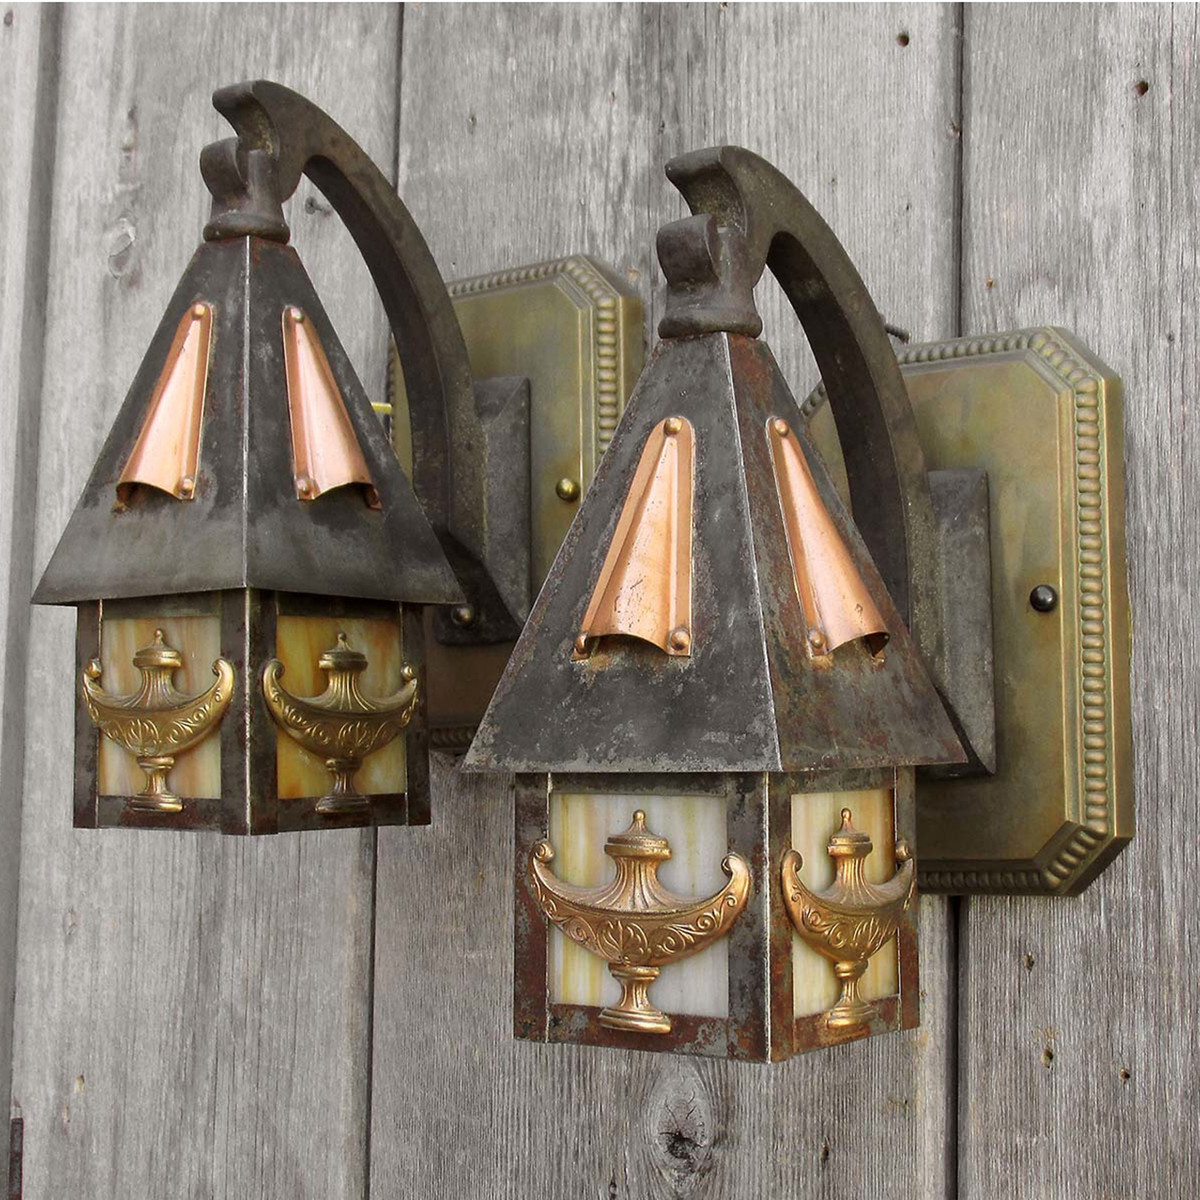 608423 - Pair of Antique Exterior Wall Sconces made by Bradley & Hubbard